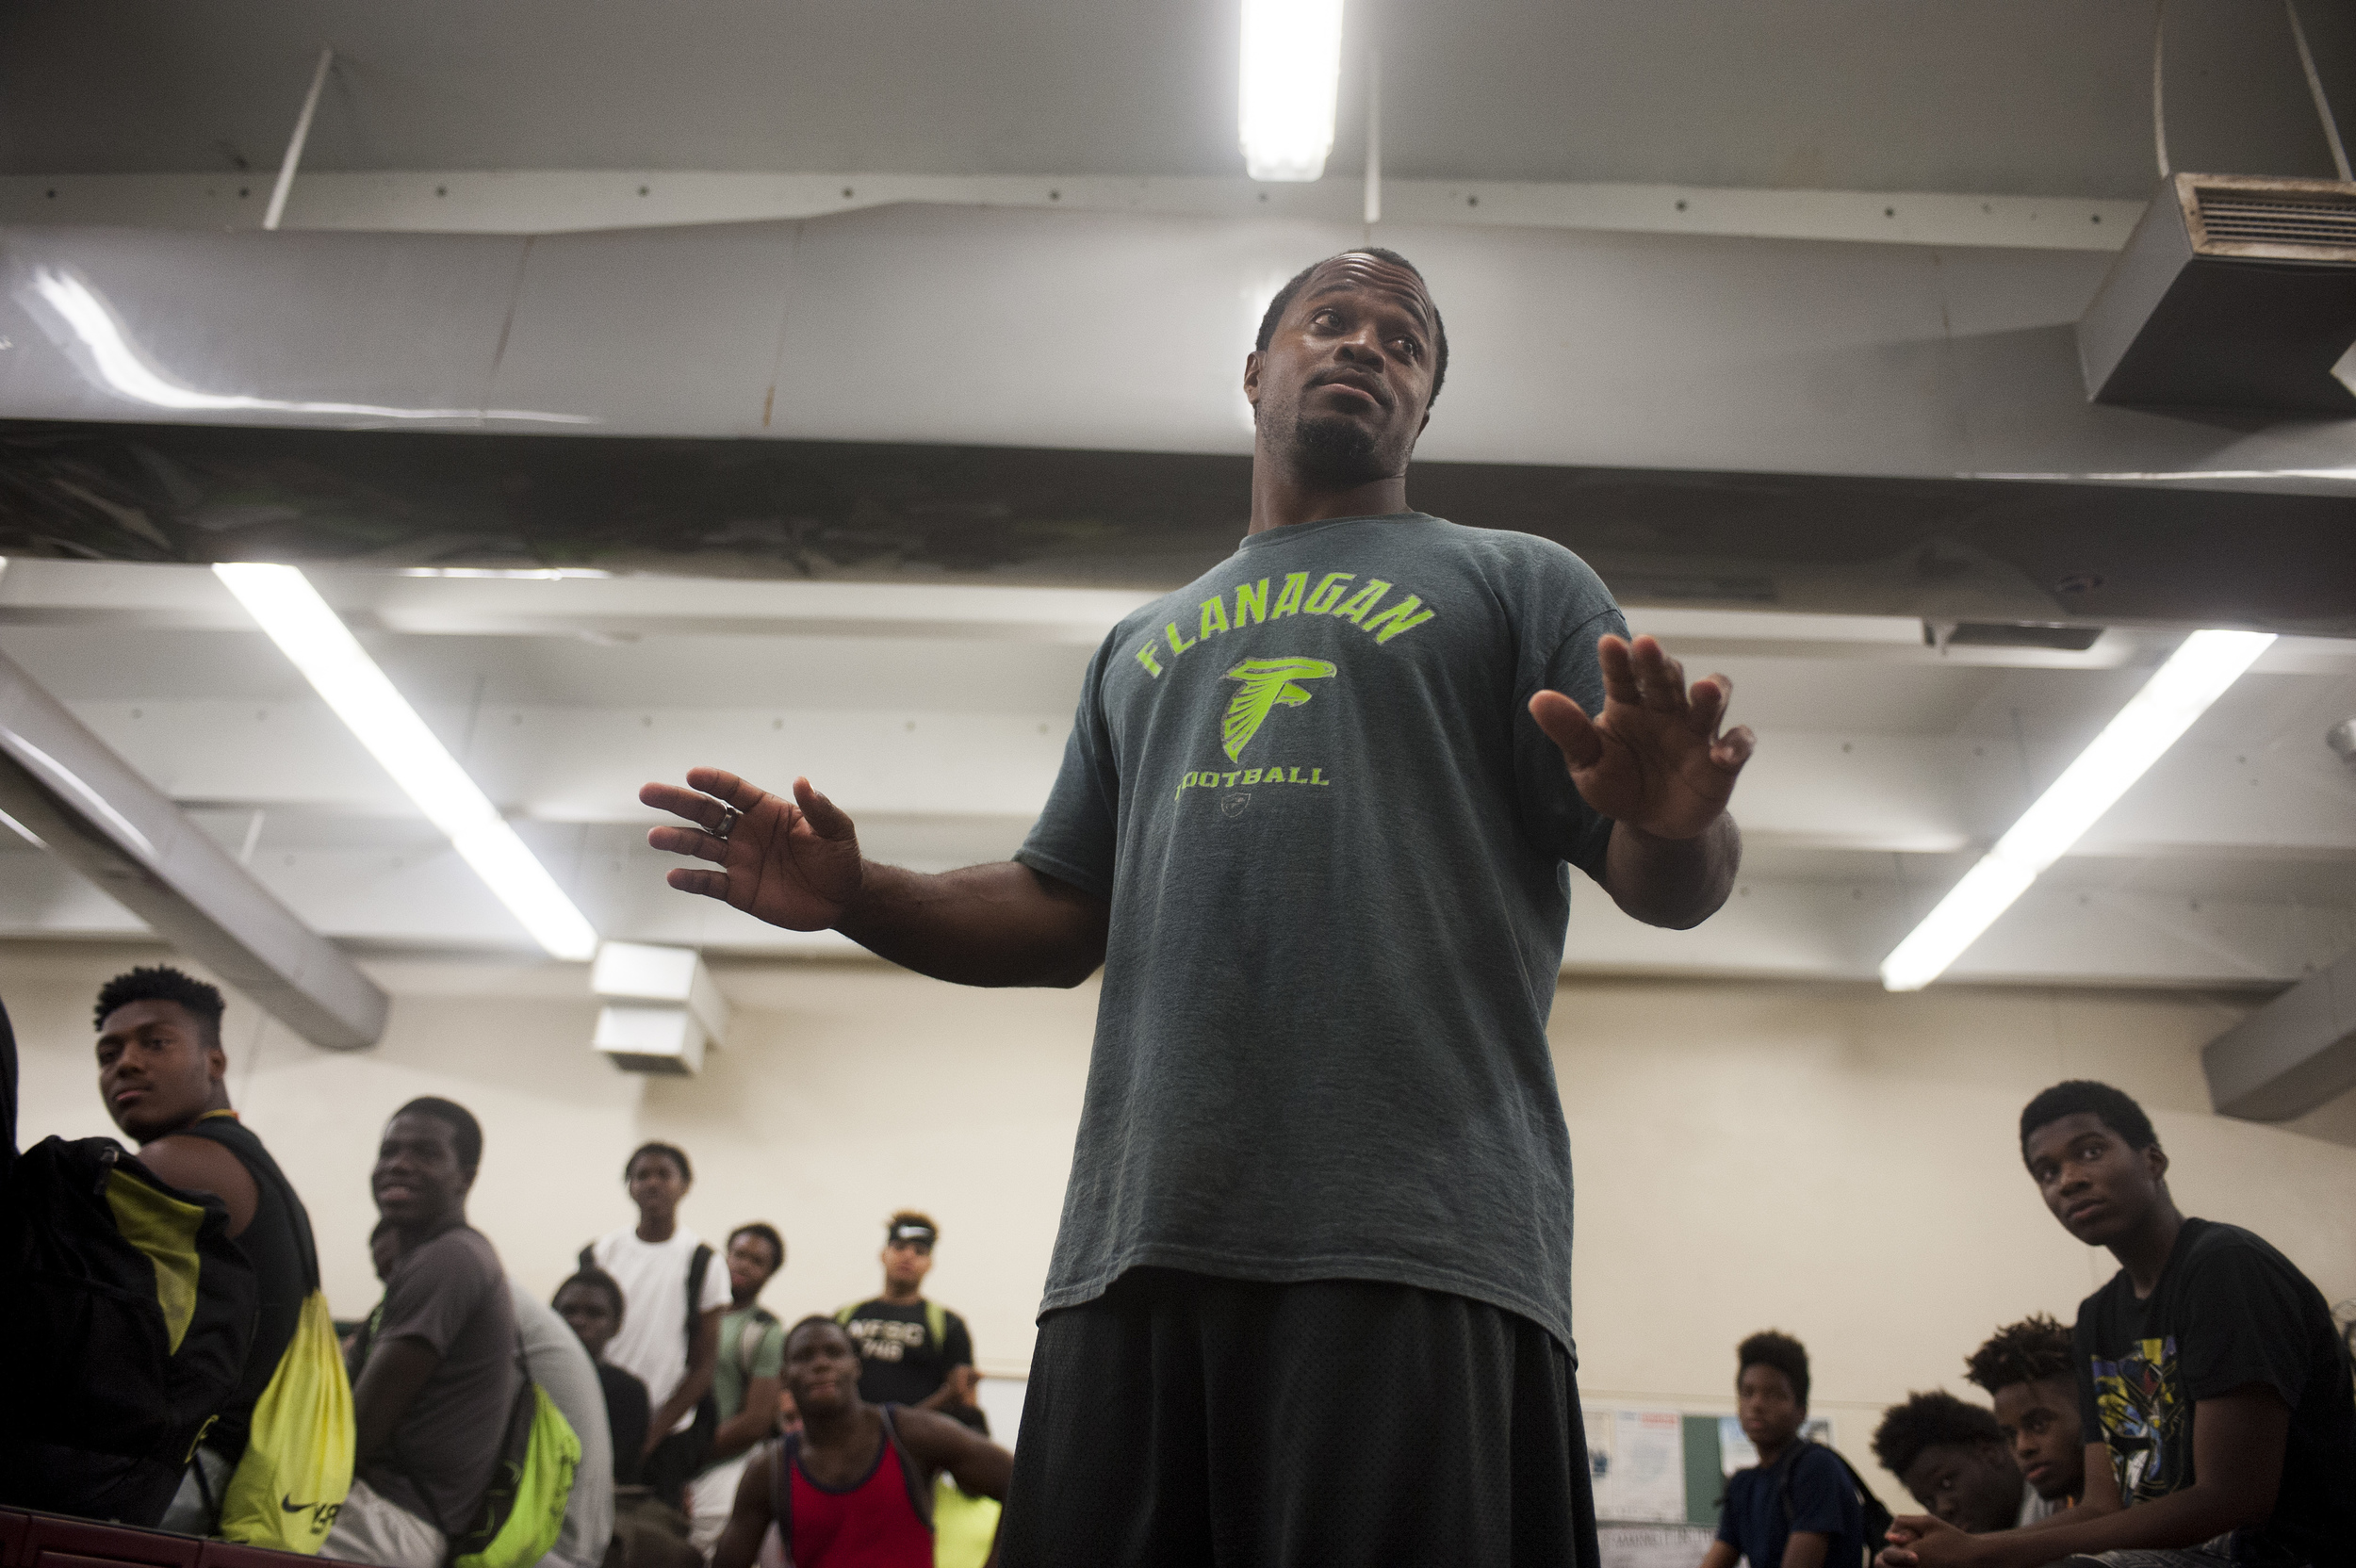 Flanagan high school head coach Stanford Samuel II talks to his team int he locker room during the first practice of the high school football season at Flanagan High School on Monday, Aug. 1, 2016. The reigning state champions look to repeat again despite the loss of key players from last year.